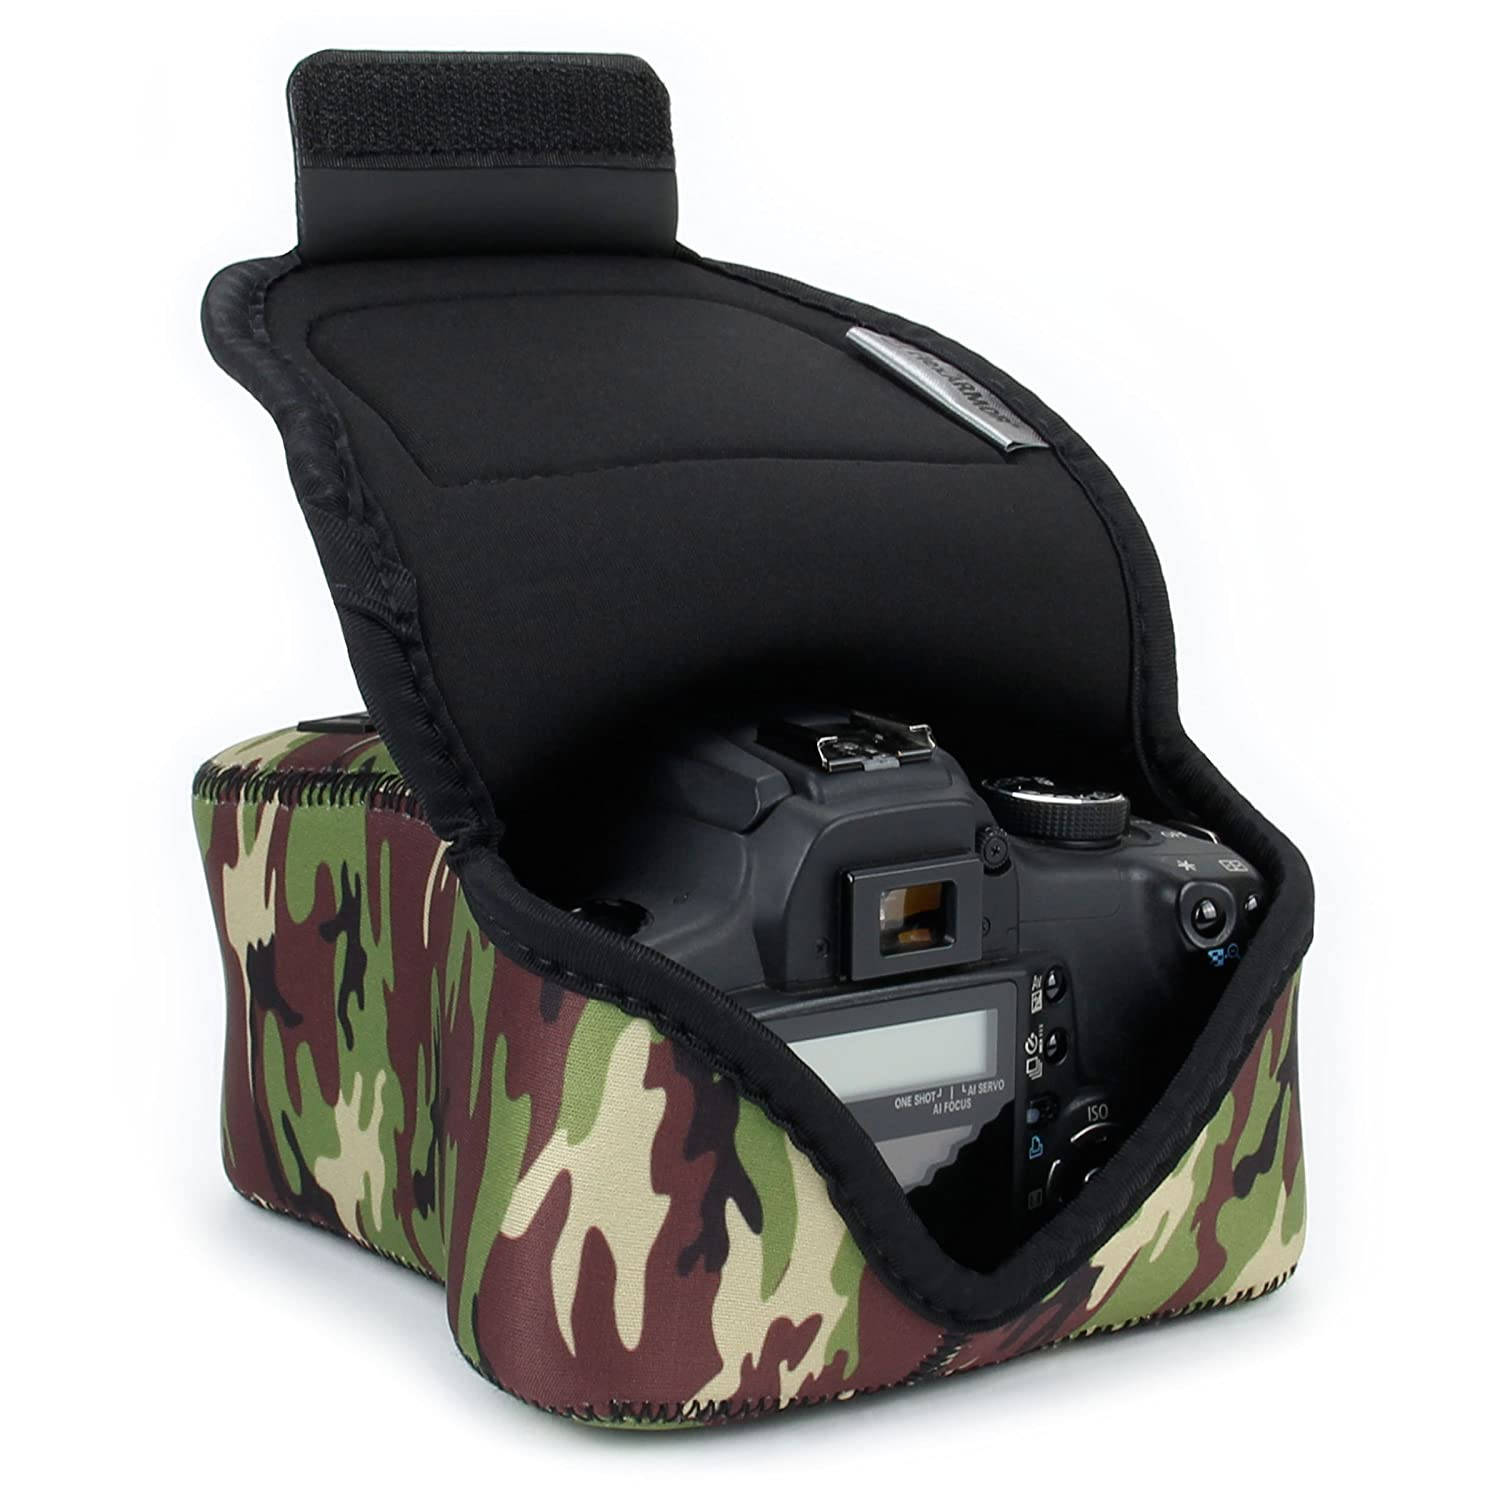 DSLR Camera Case / Camera Sleeve (Geometric) w/Neoprene Protection, Holster Belt Loop and Accessory Storage by USA Gear - Works With Nikon D3400 / Canon EOS Rebel SL2 / Pentax K-70 & Many More DSLRs Accessory Power GRFAFSL110GMEW